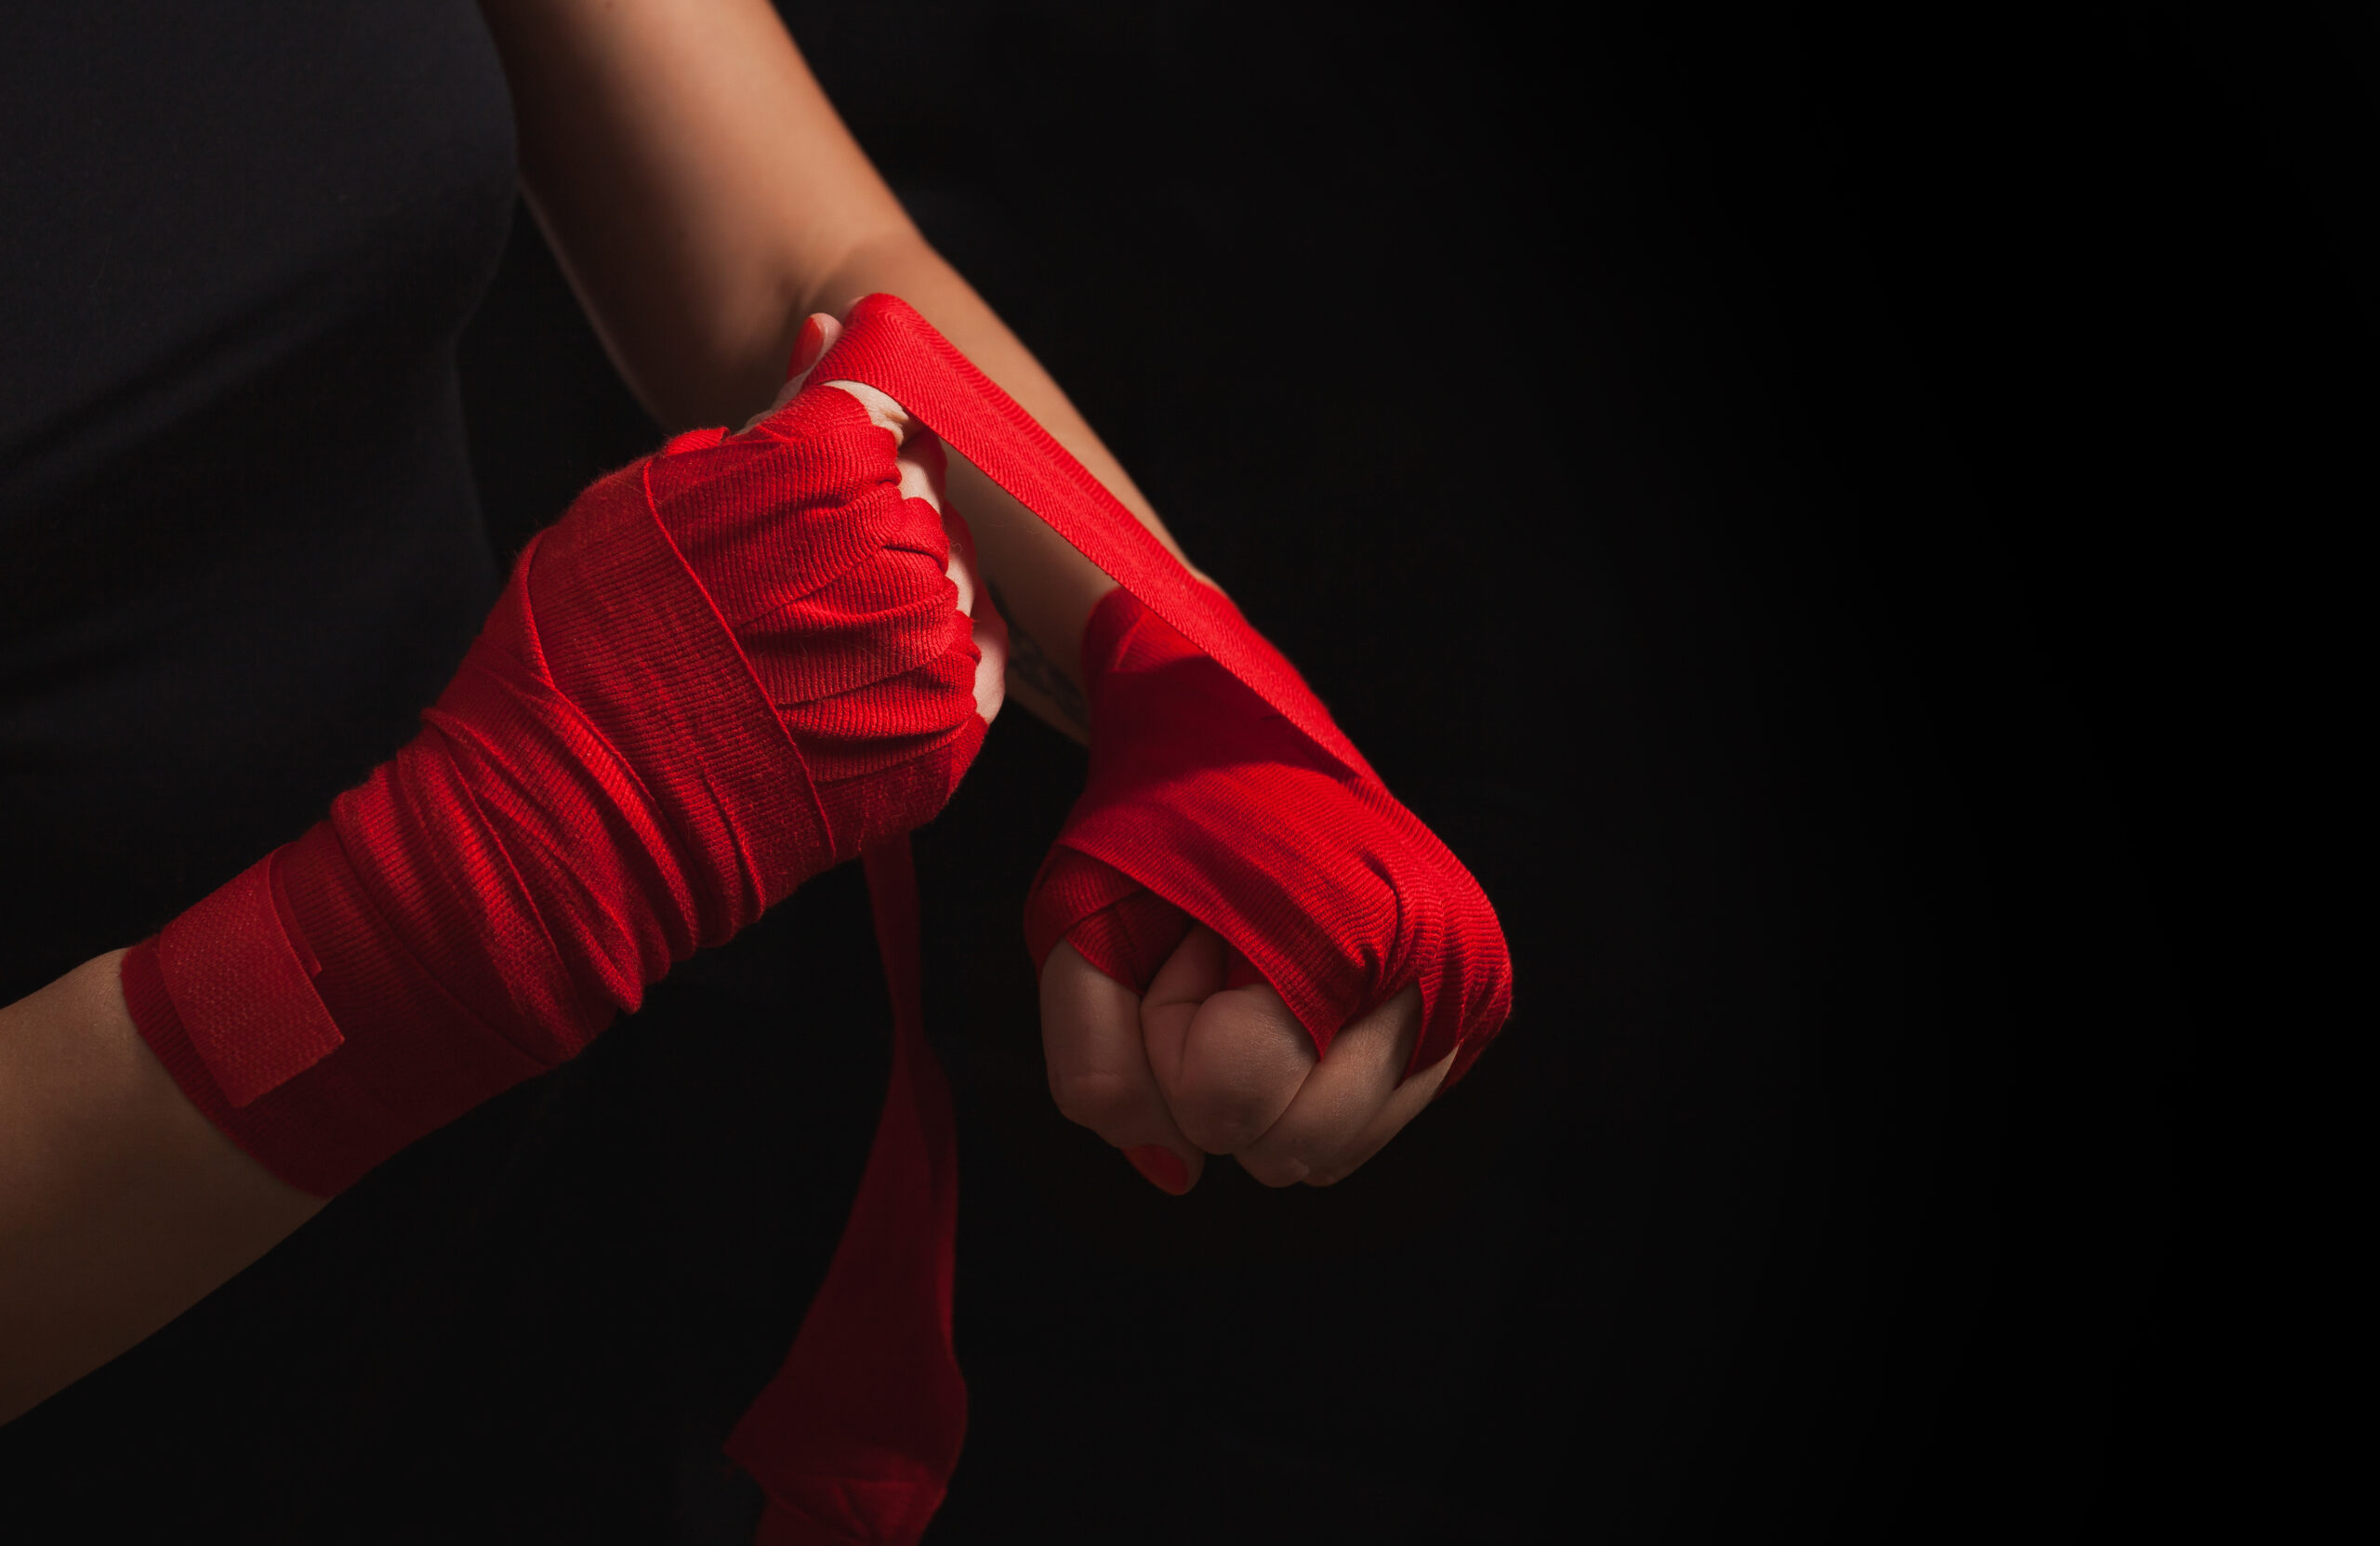 martial art woman wrapping hands ready for training - learn kung fu online